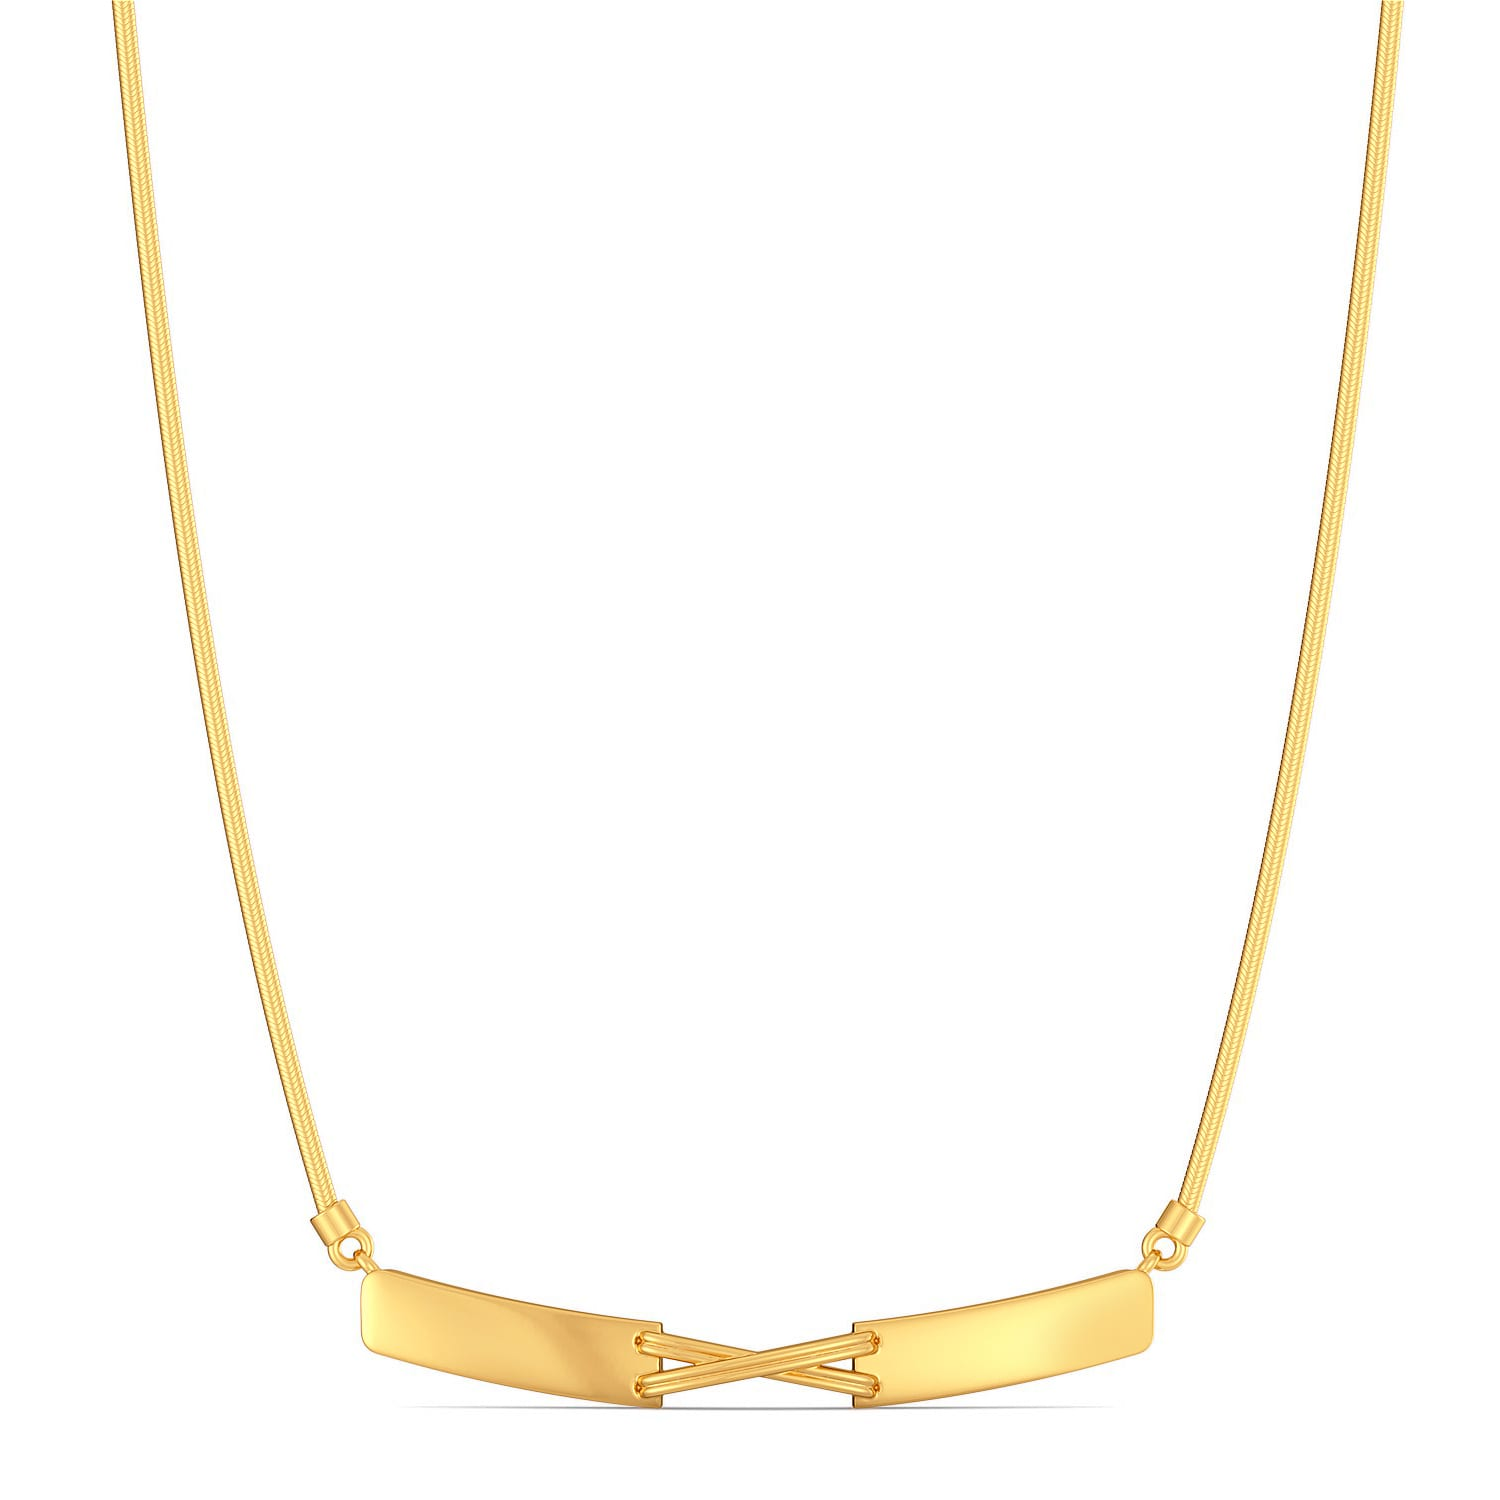 The Cross Bows Gold Necklaces